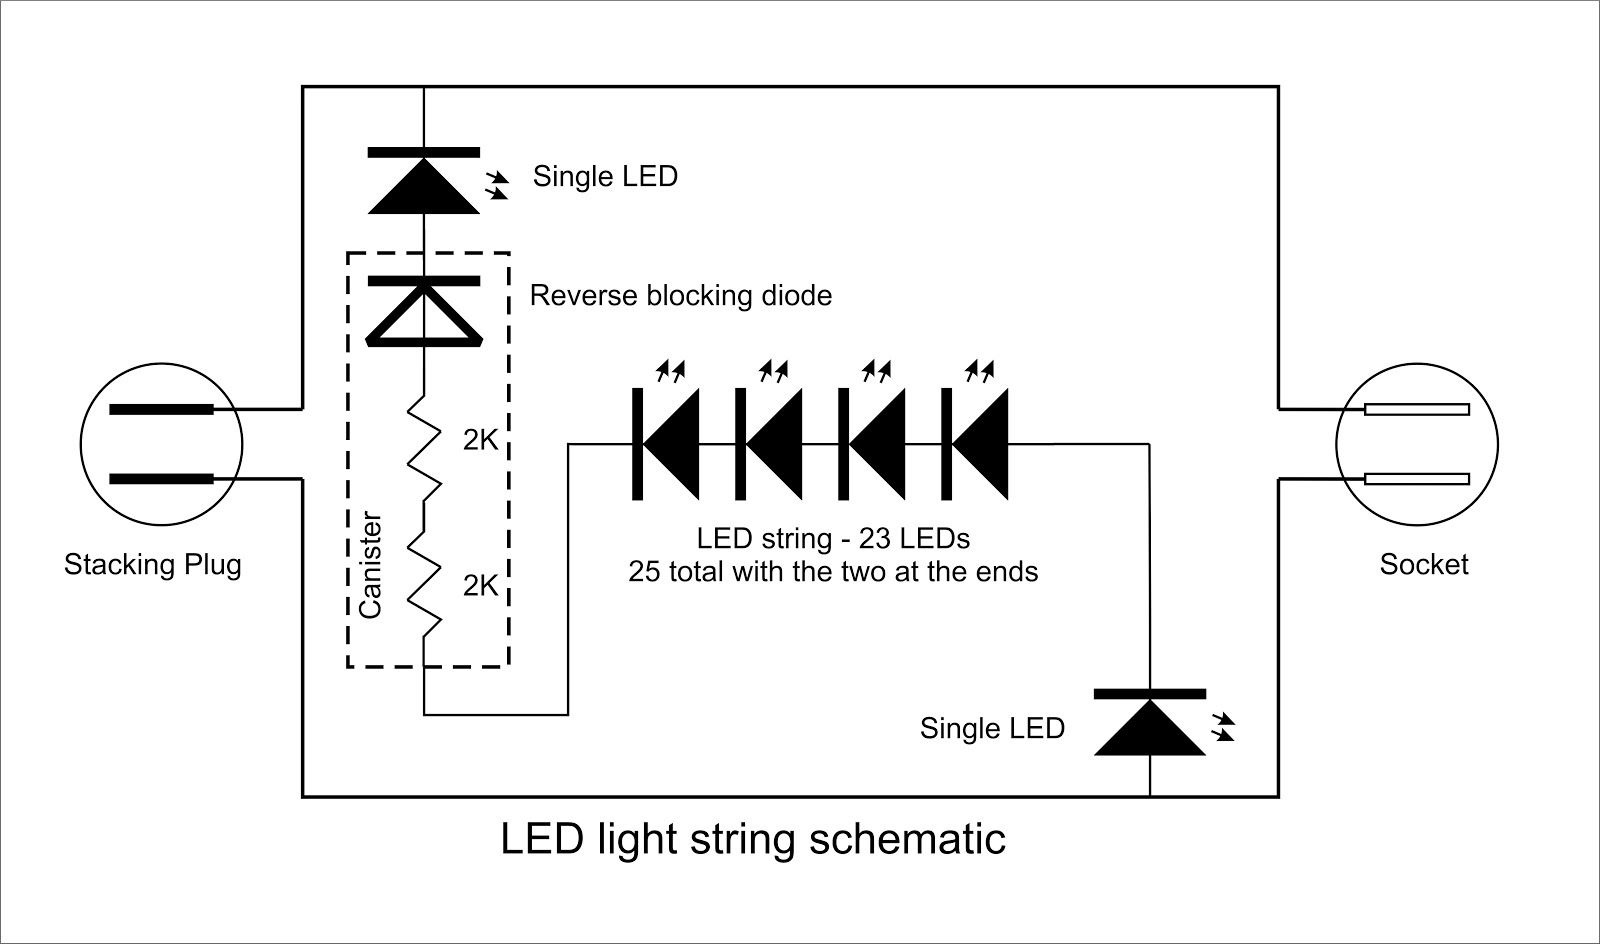 Led Light String Wiring Diagram - Wiring Diagram Schematics